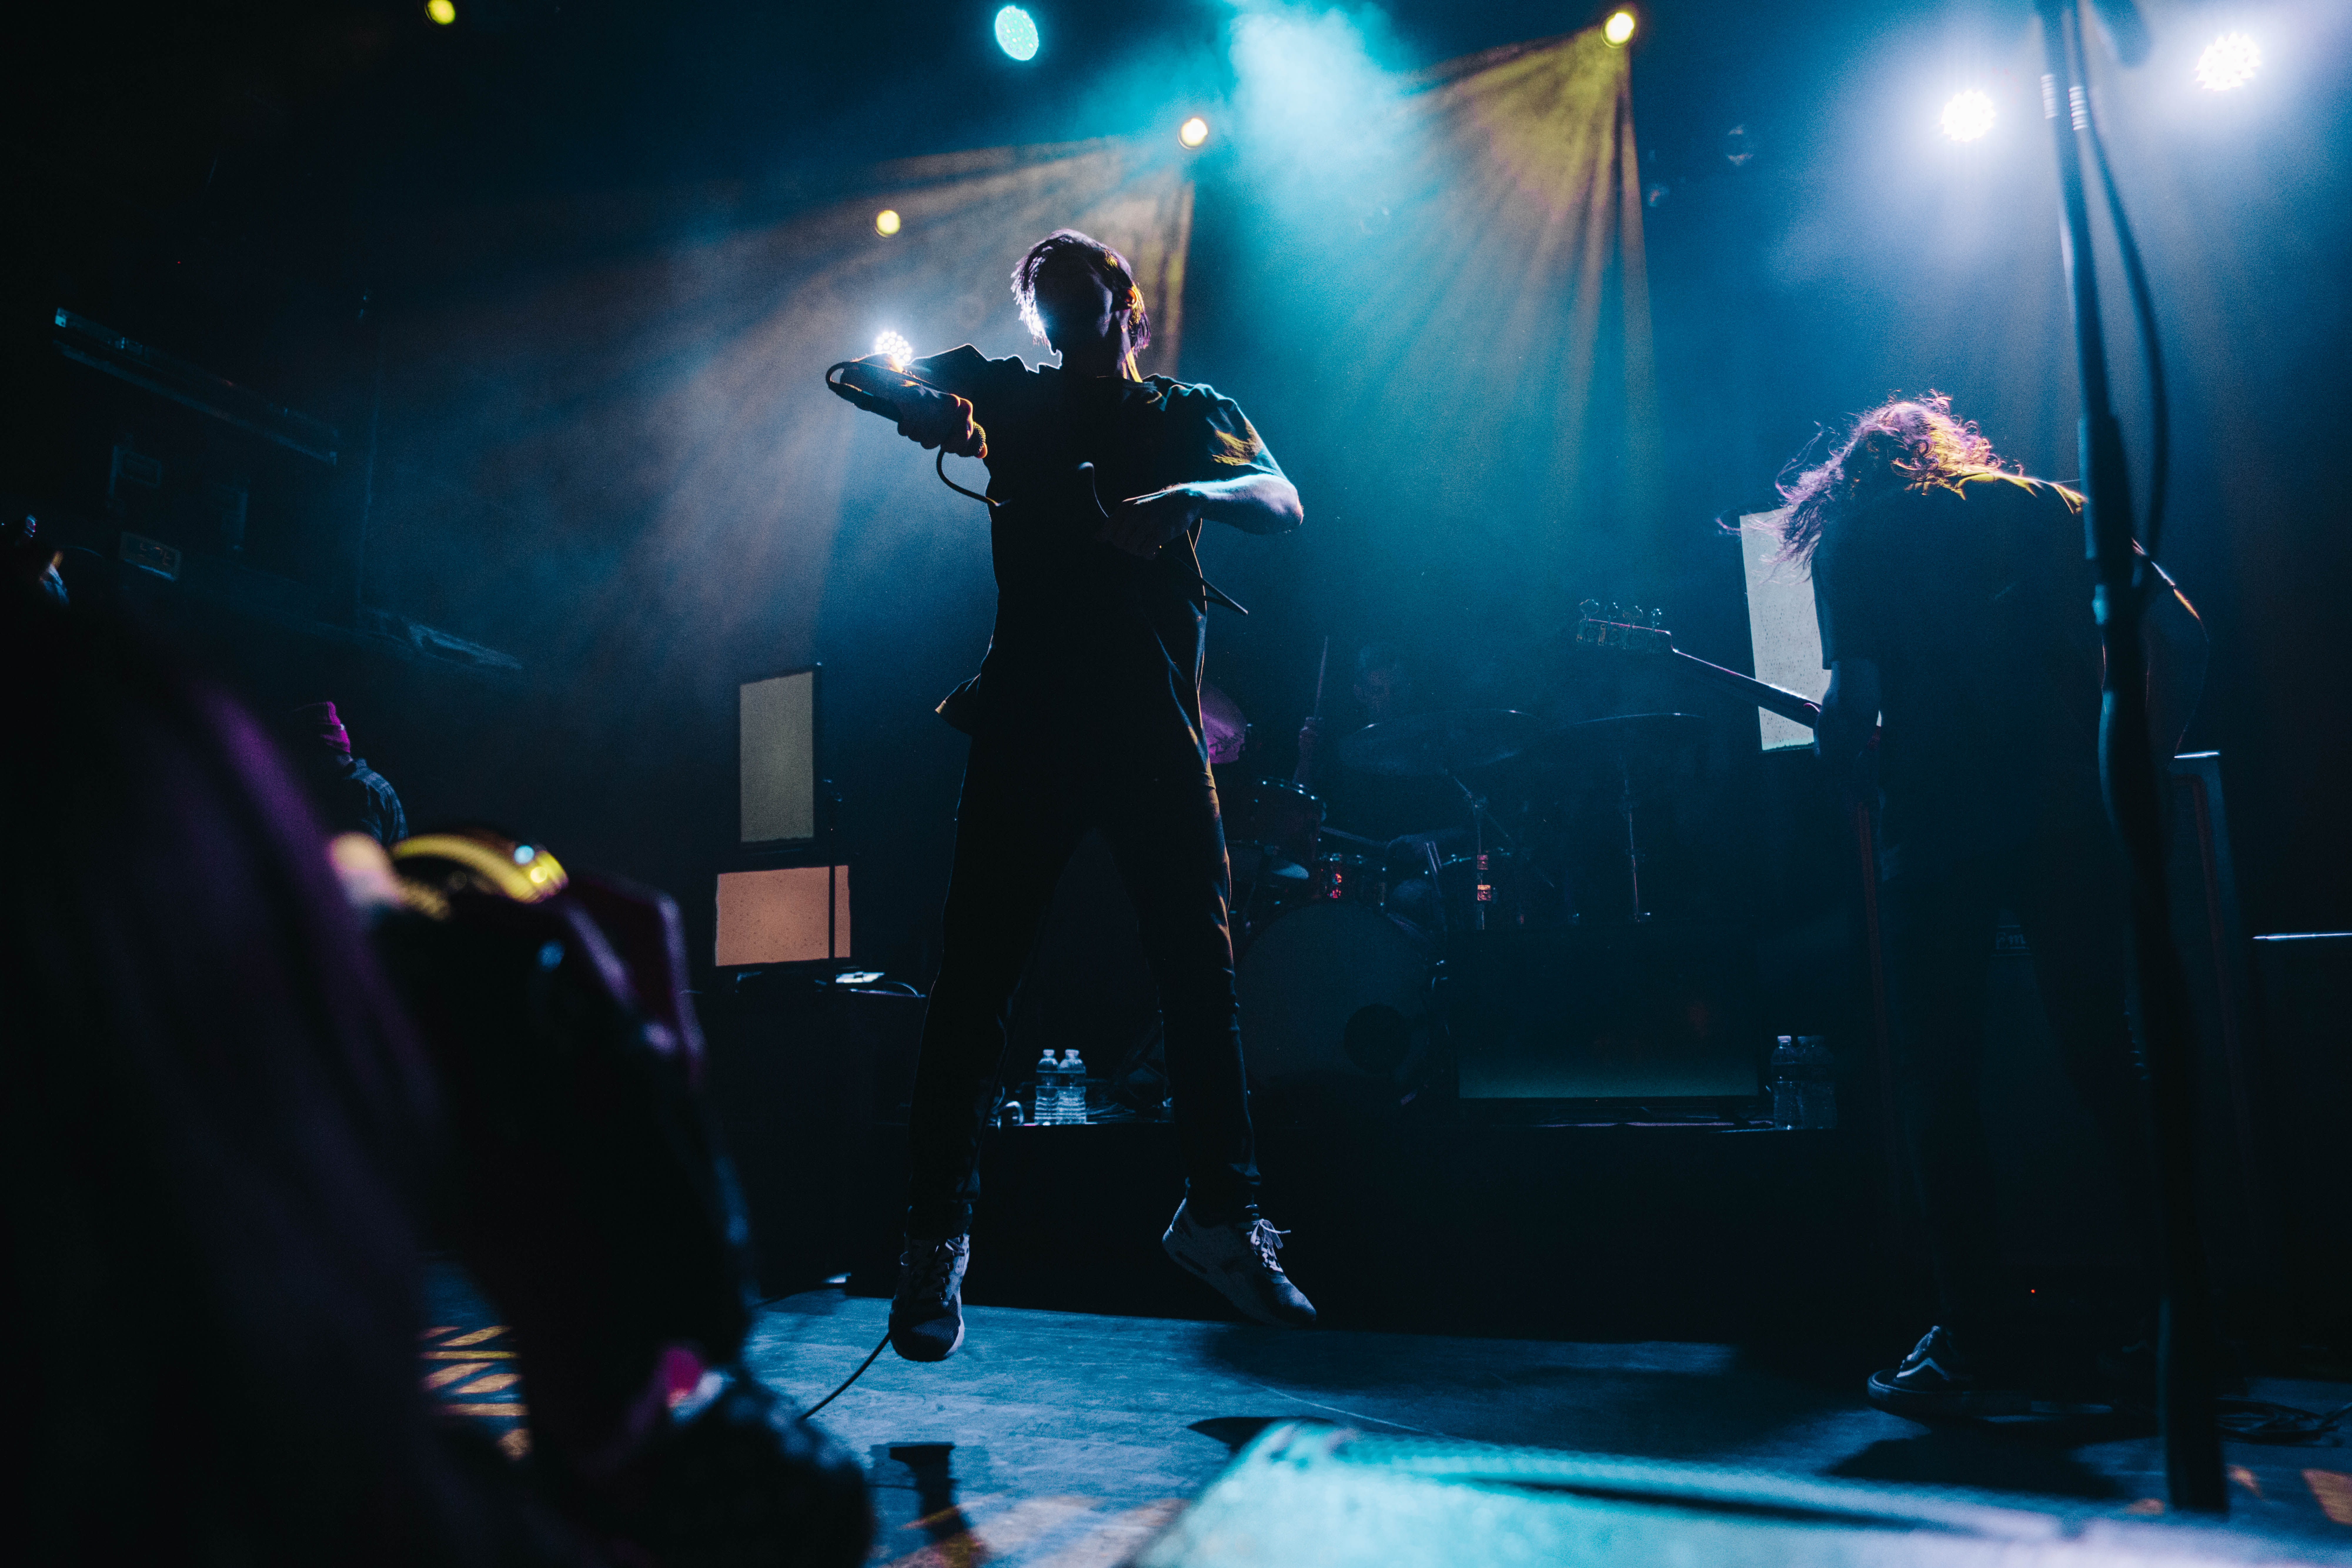 PHOTOS: Knuckle Puck at Irving Plaza